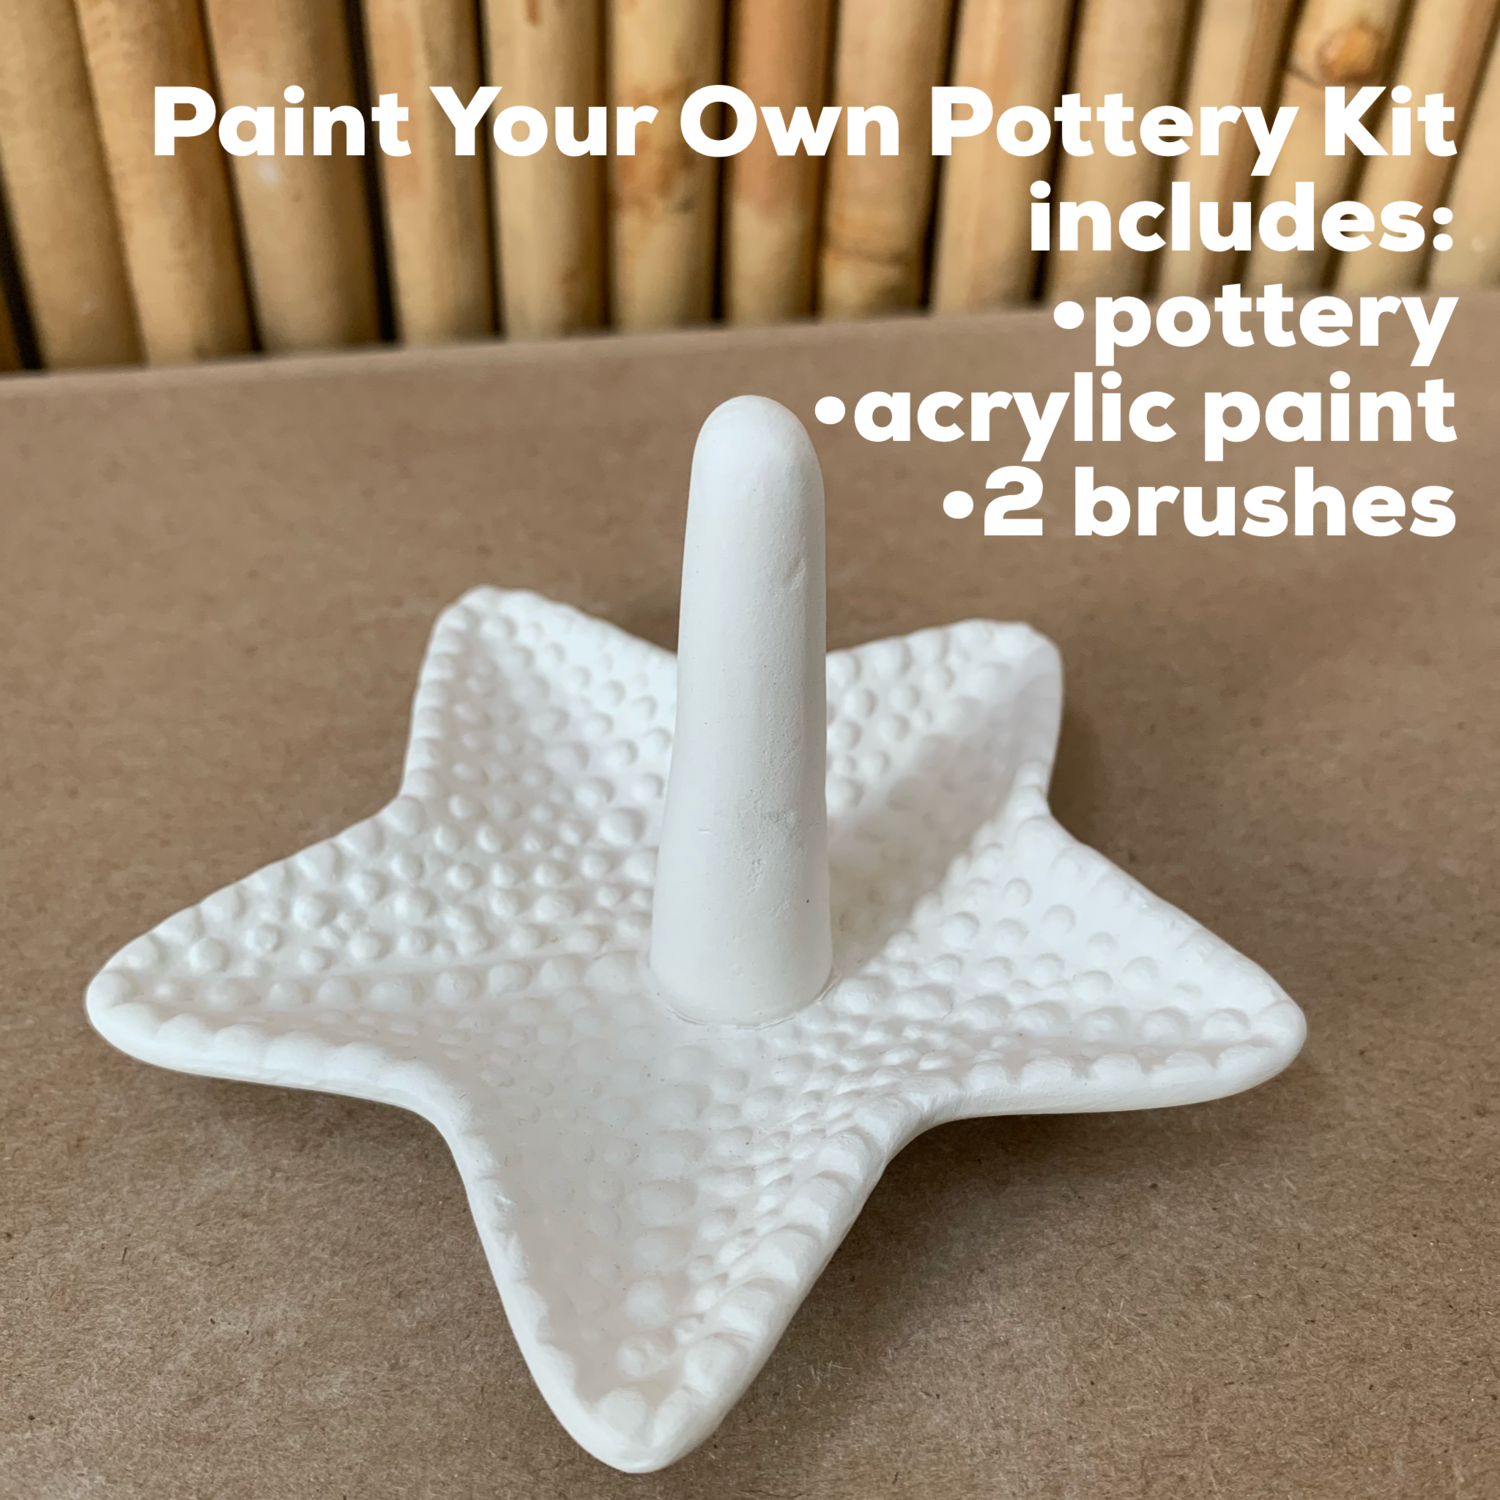 NO FIRE Paint Your Own Pottery Kit -  Ceramic Starfish Ring Holder Acrylic Painting Kit